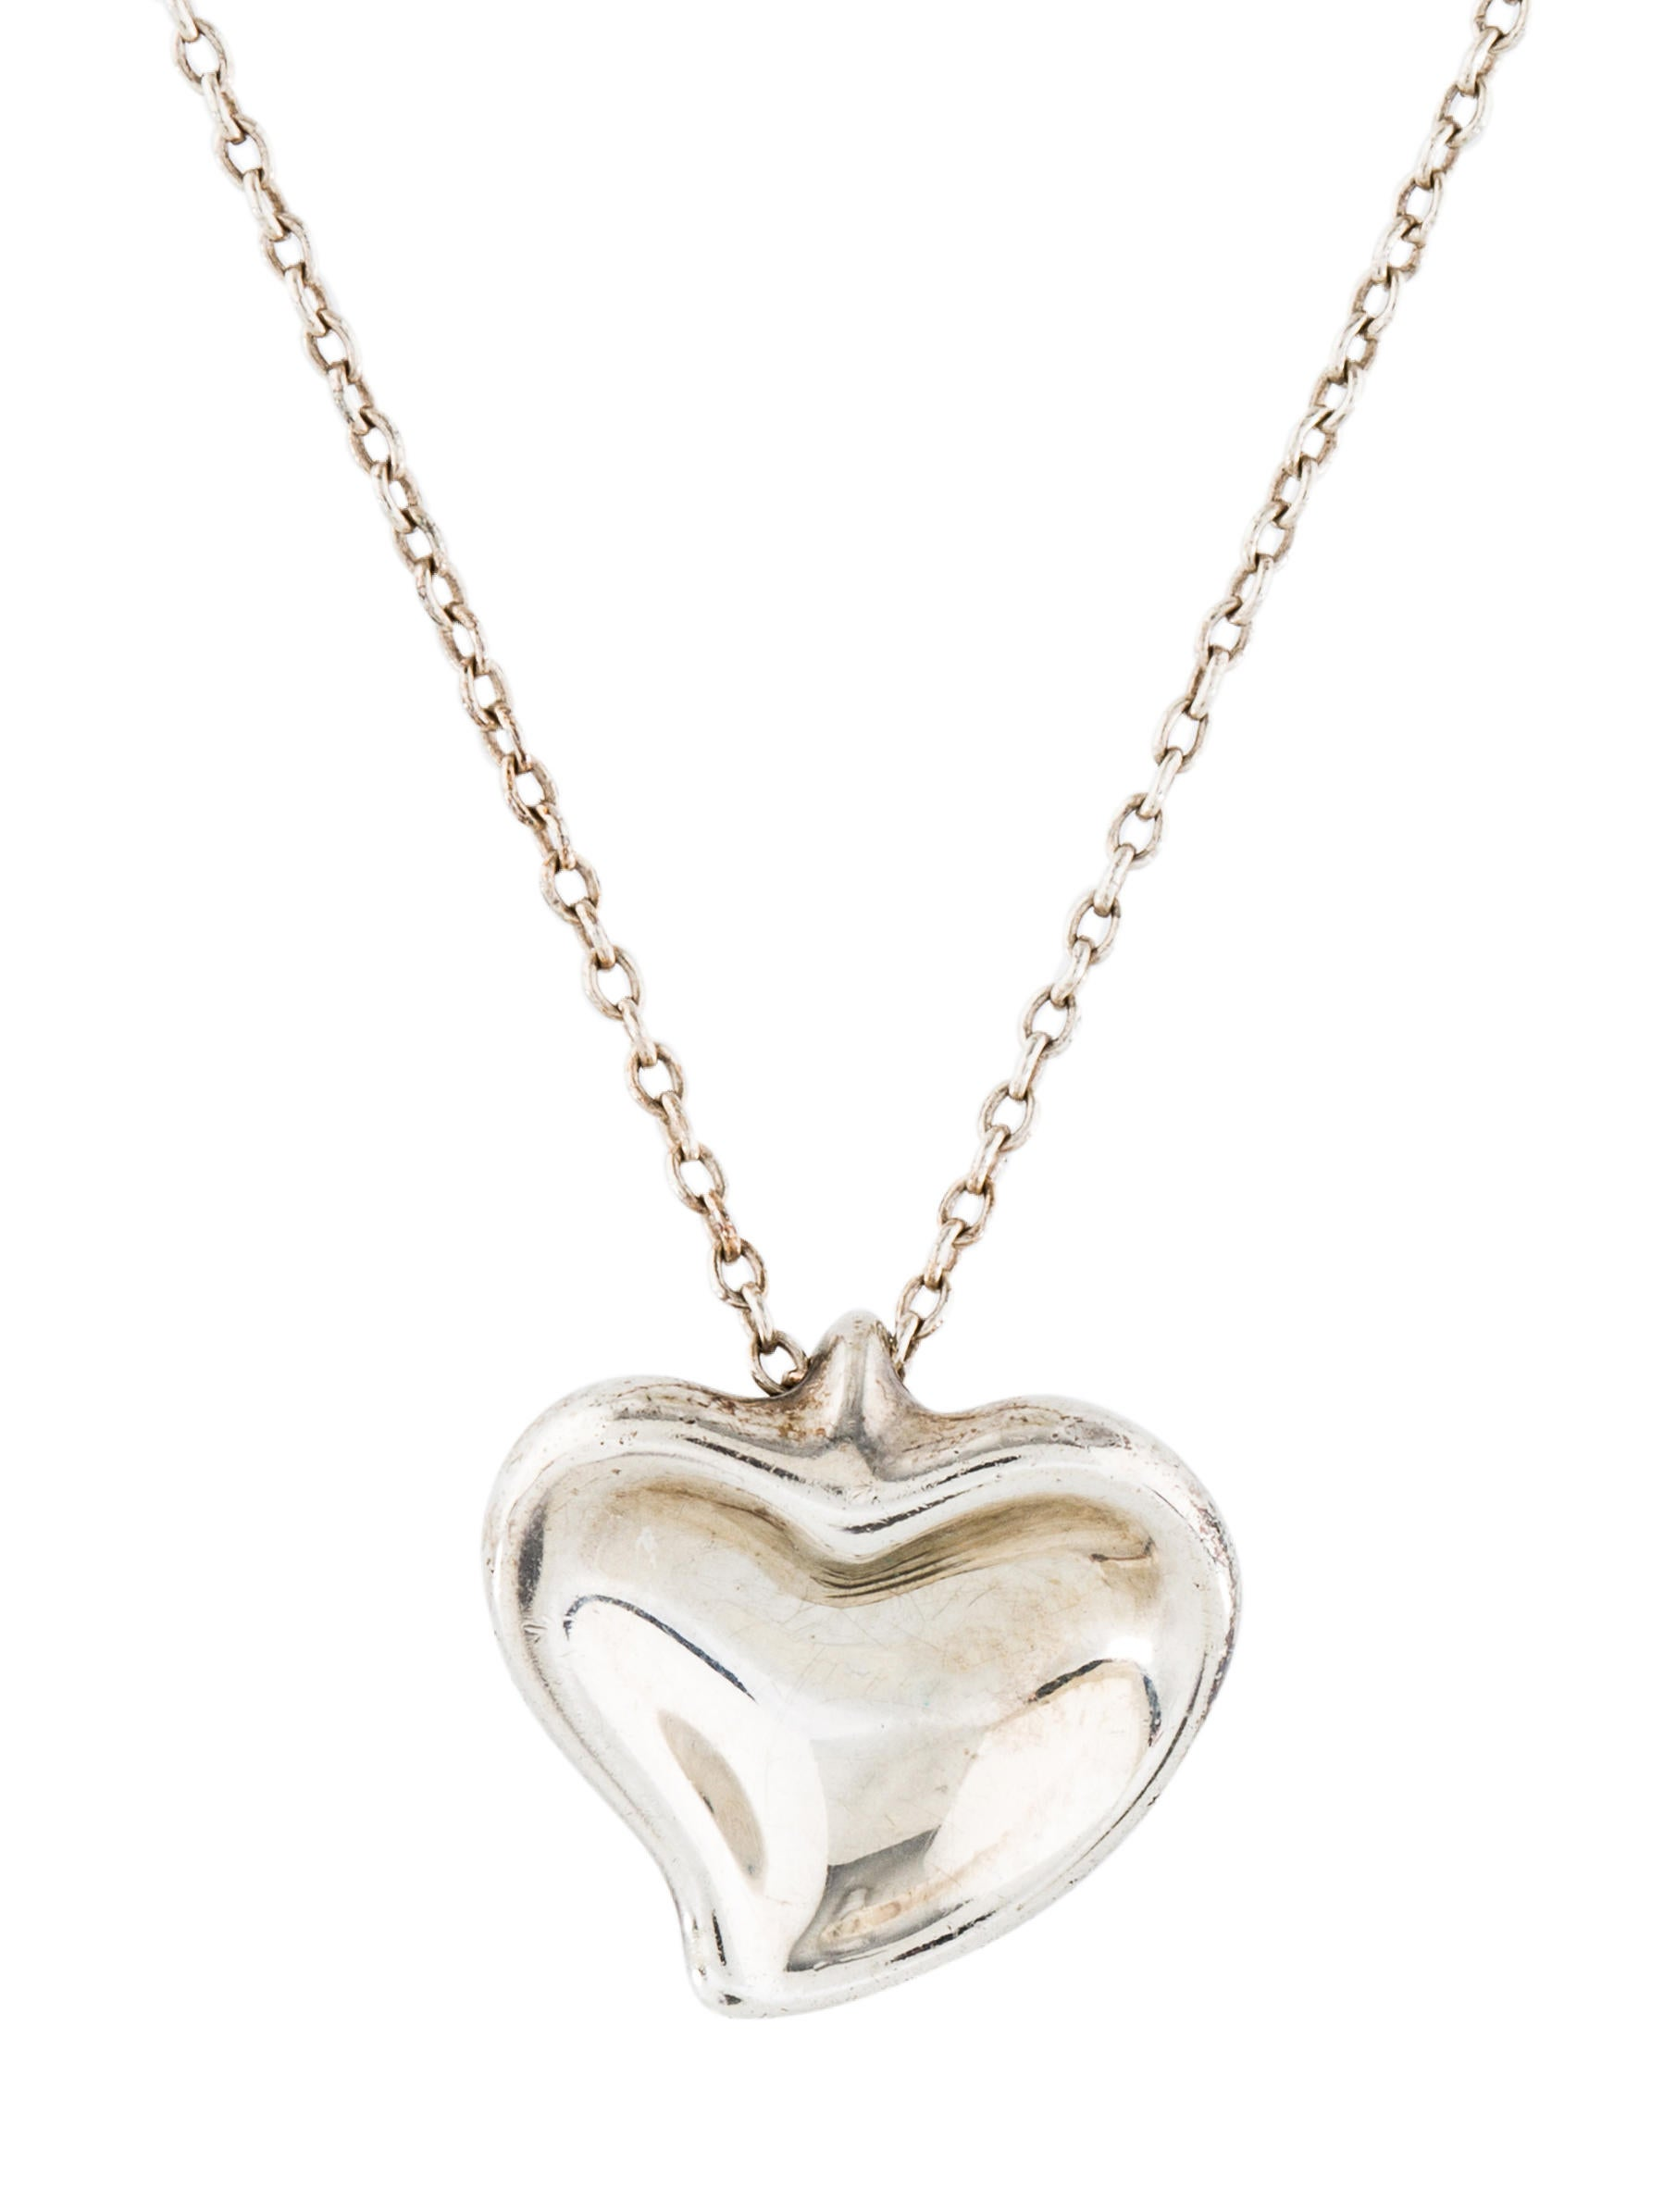 Tiffany co heart pendant necklace necklaces tif76319 the heart pendant necklace aloadofball Gallery